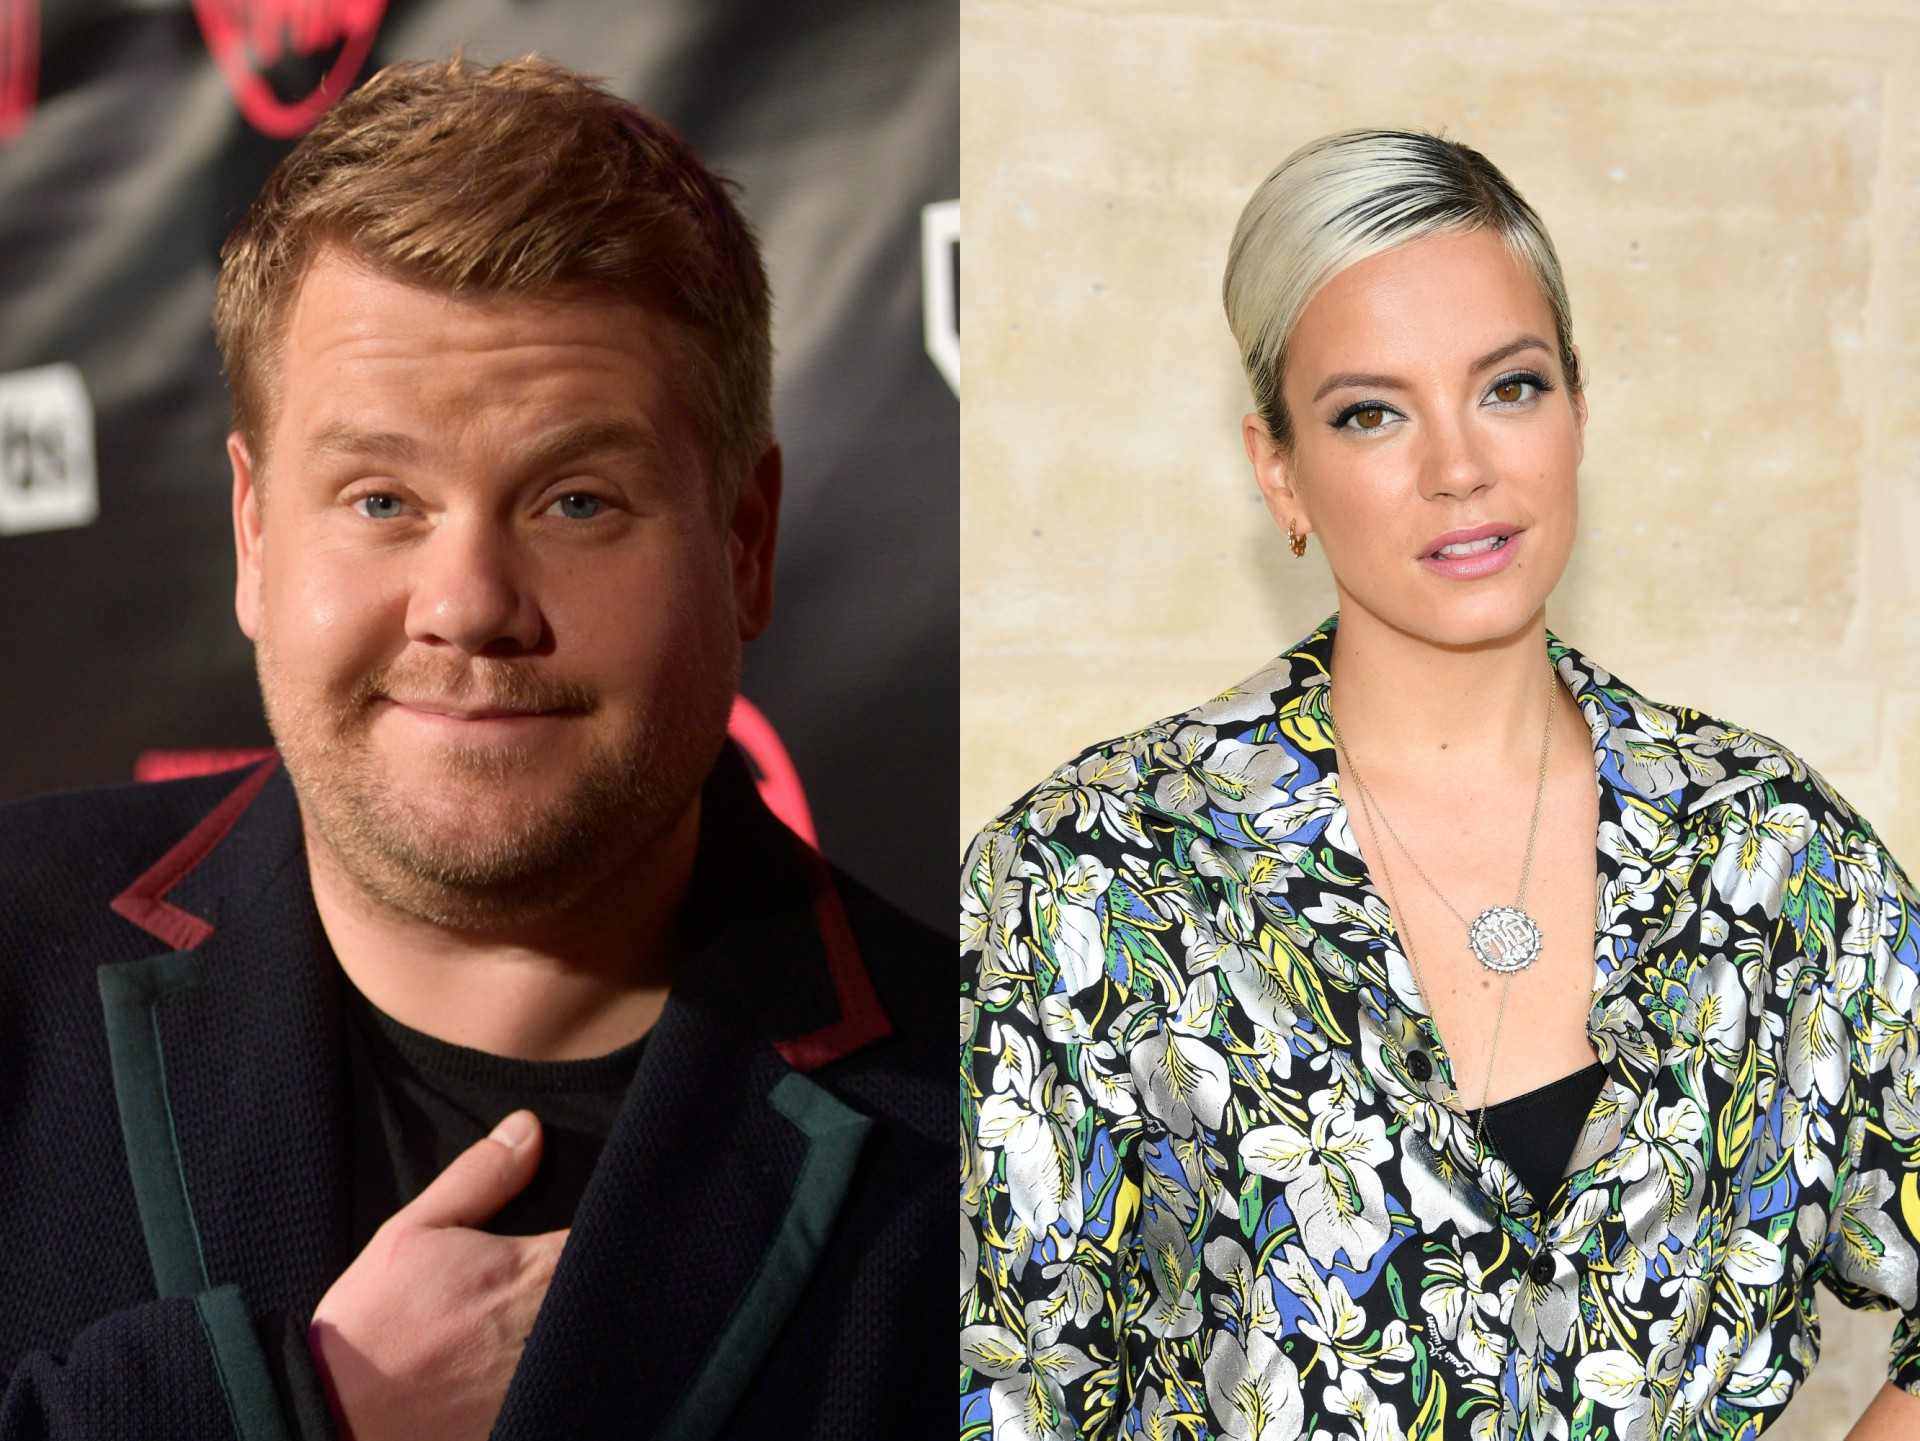 Lily Allen played along with James Corden during suggestive TV interview